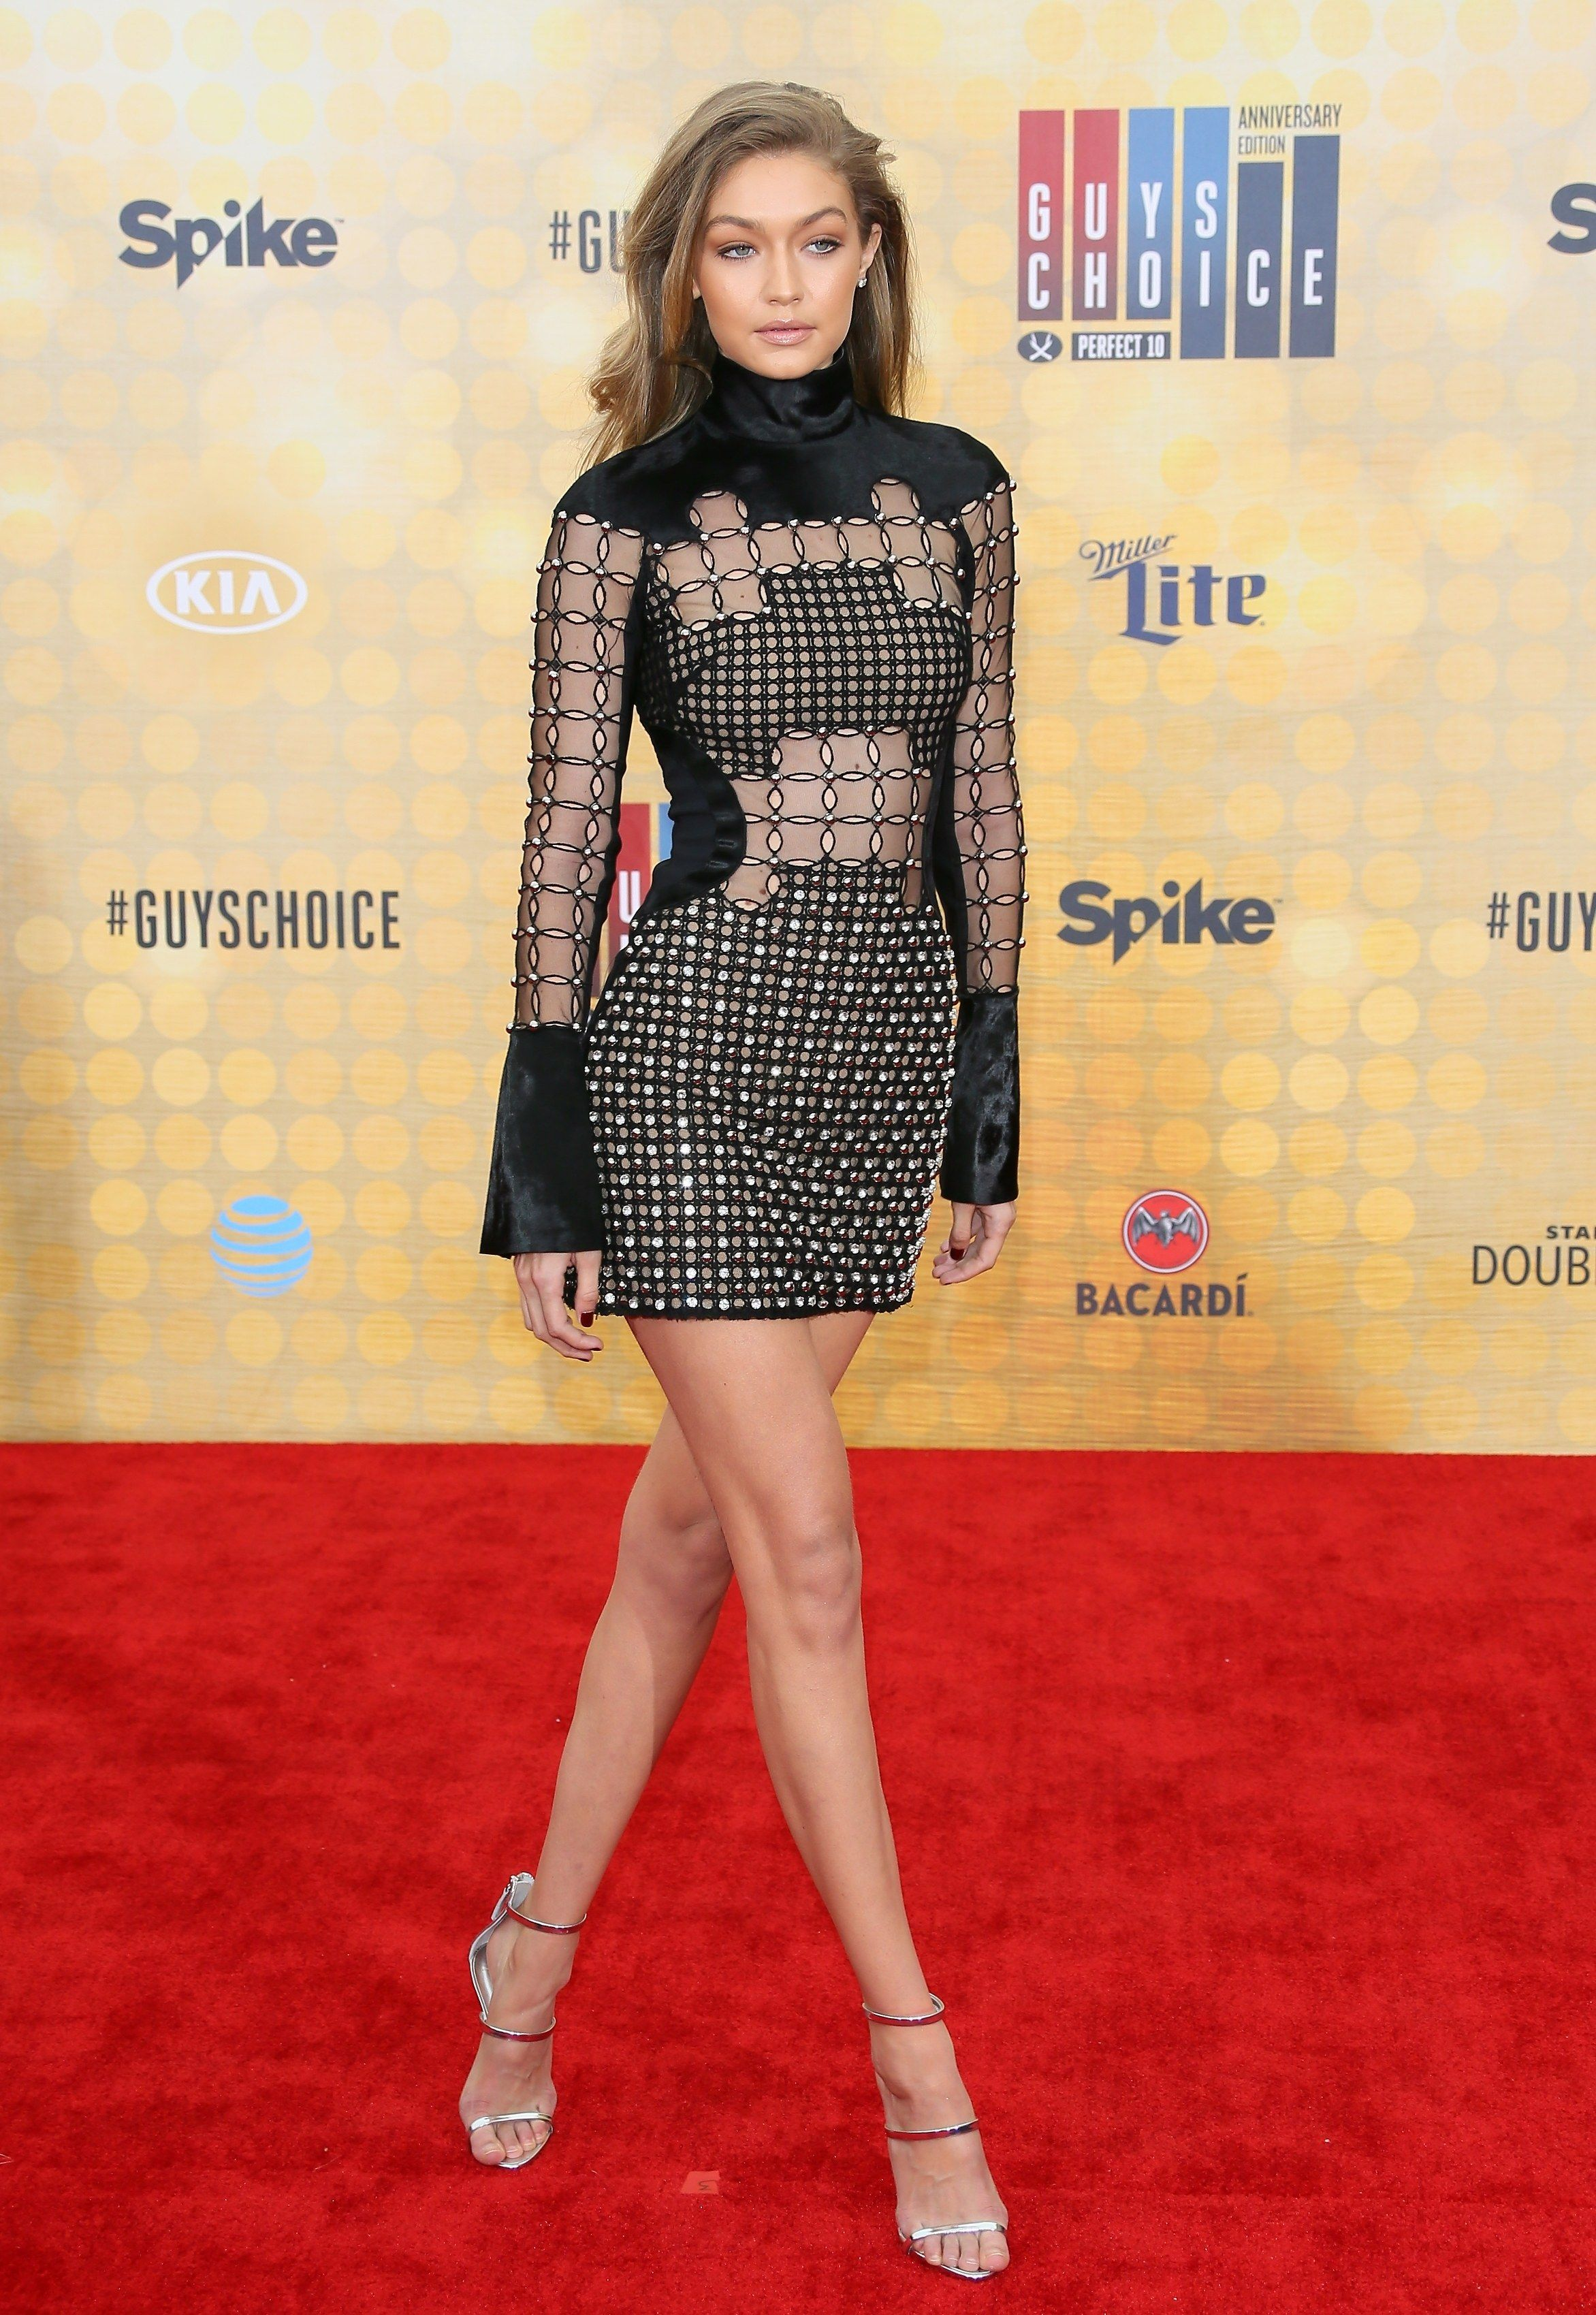 Gigi Hadid Gives J Lo A Run For Her Money With Outfit Changes At The Amas Gigi Hadid Outfits Fashion Gigi Hadid Dresses [ 3000 x 2000 Pixel ]